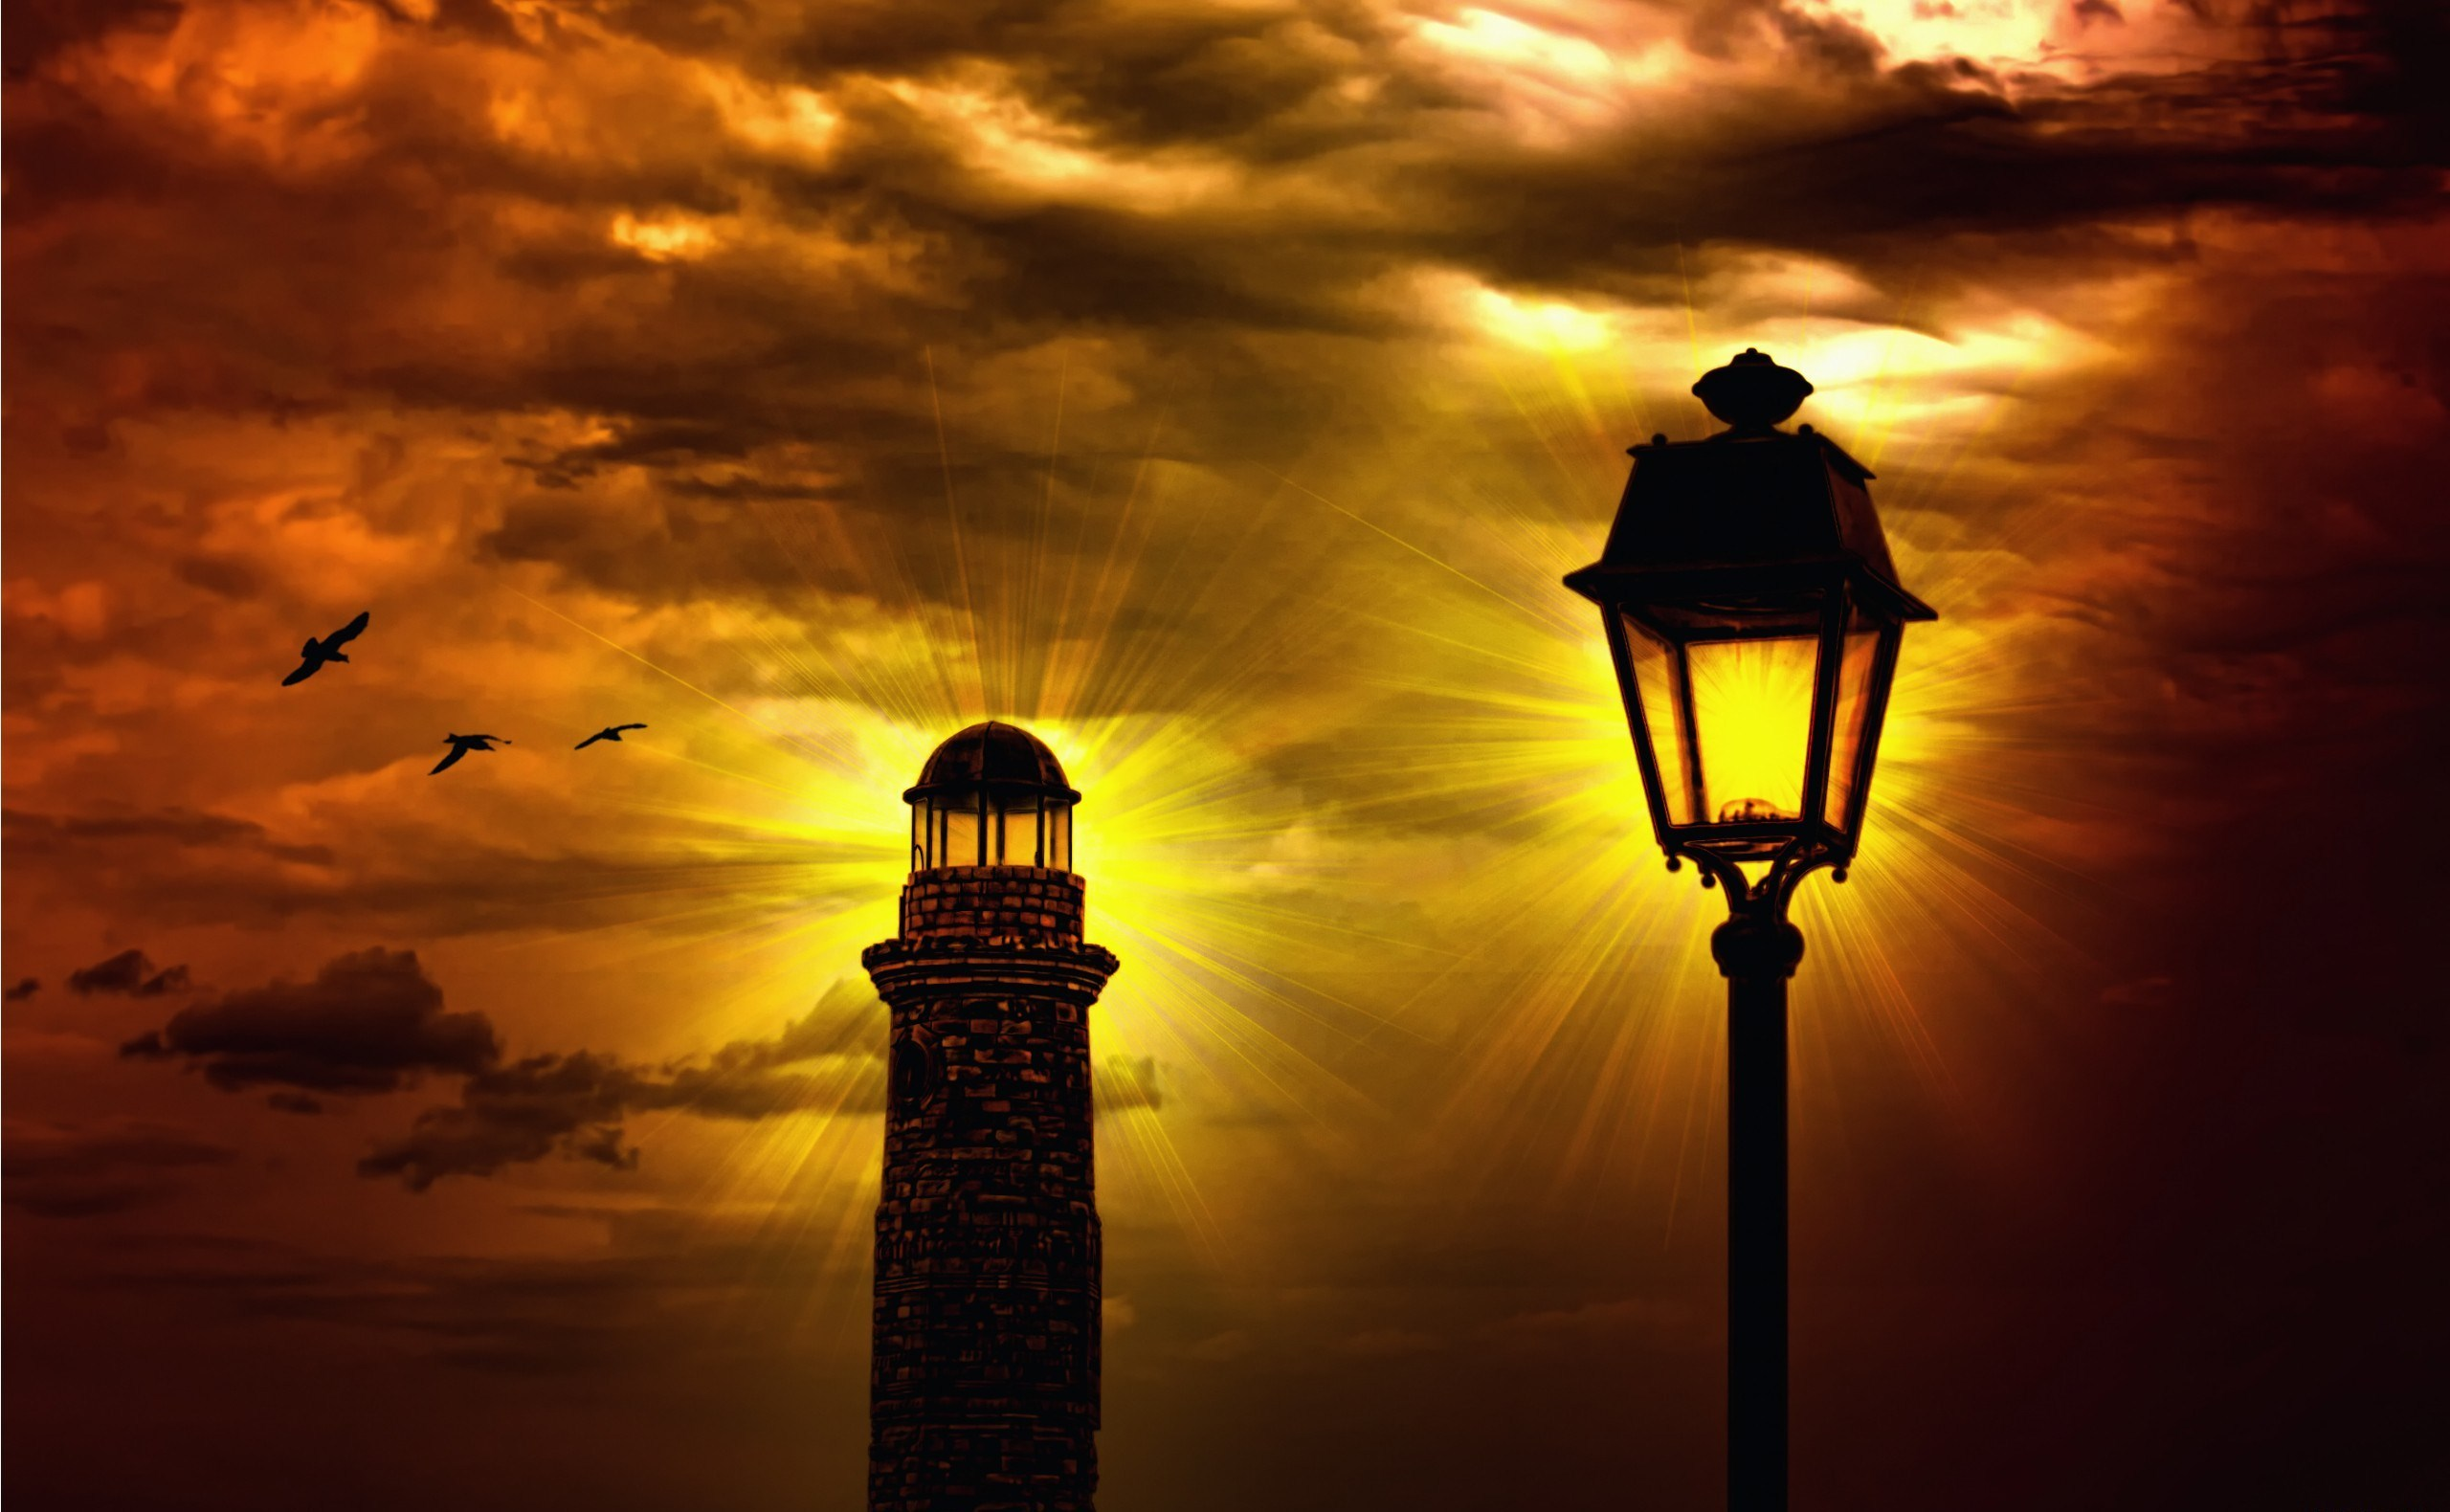 155622 Screensavers and Wallpapers Lamp for phone. Download Nature, Sky, Night, Lamp, Lantern, Lighthouse, Bad Weather pictures for free